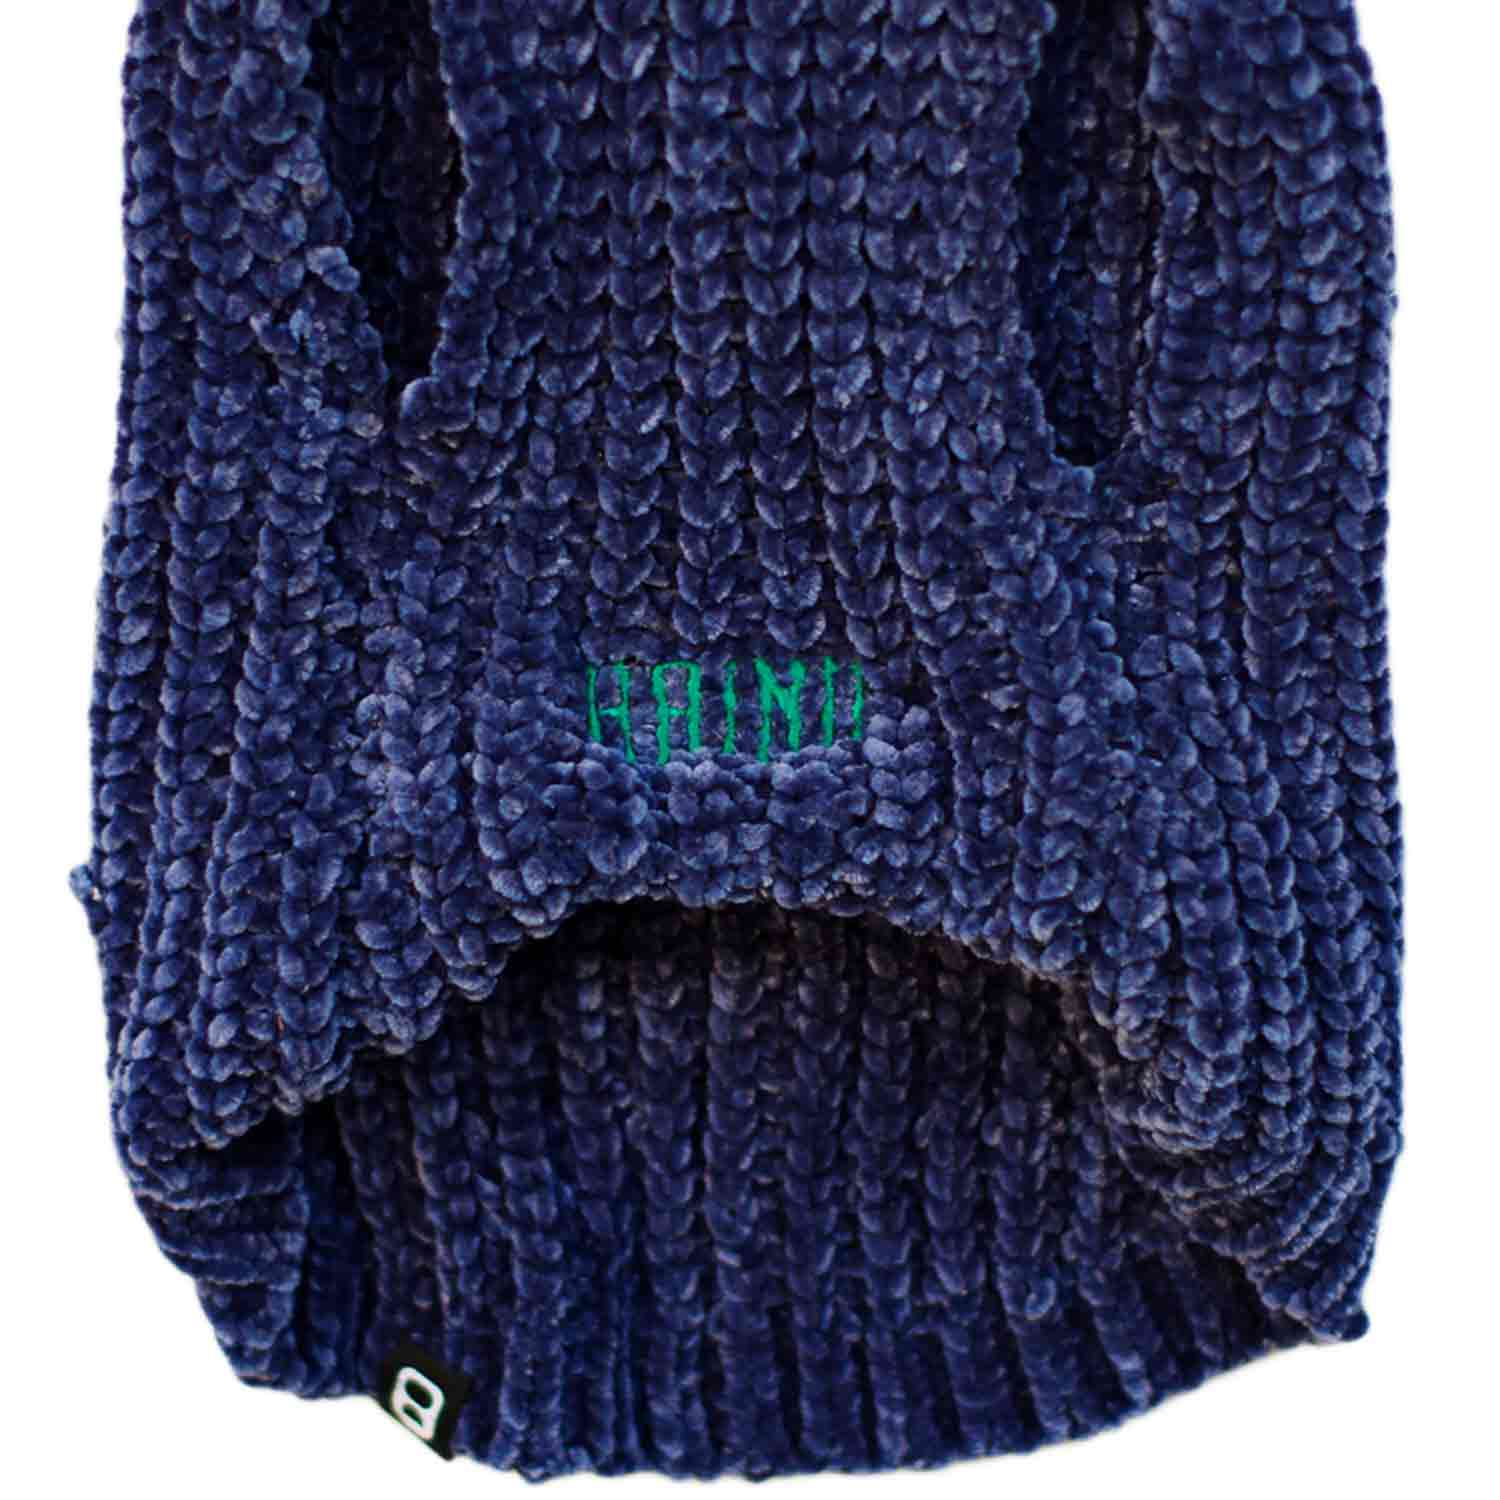 CHENILLE YARN SWEATER - NAVY